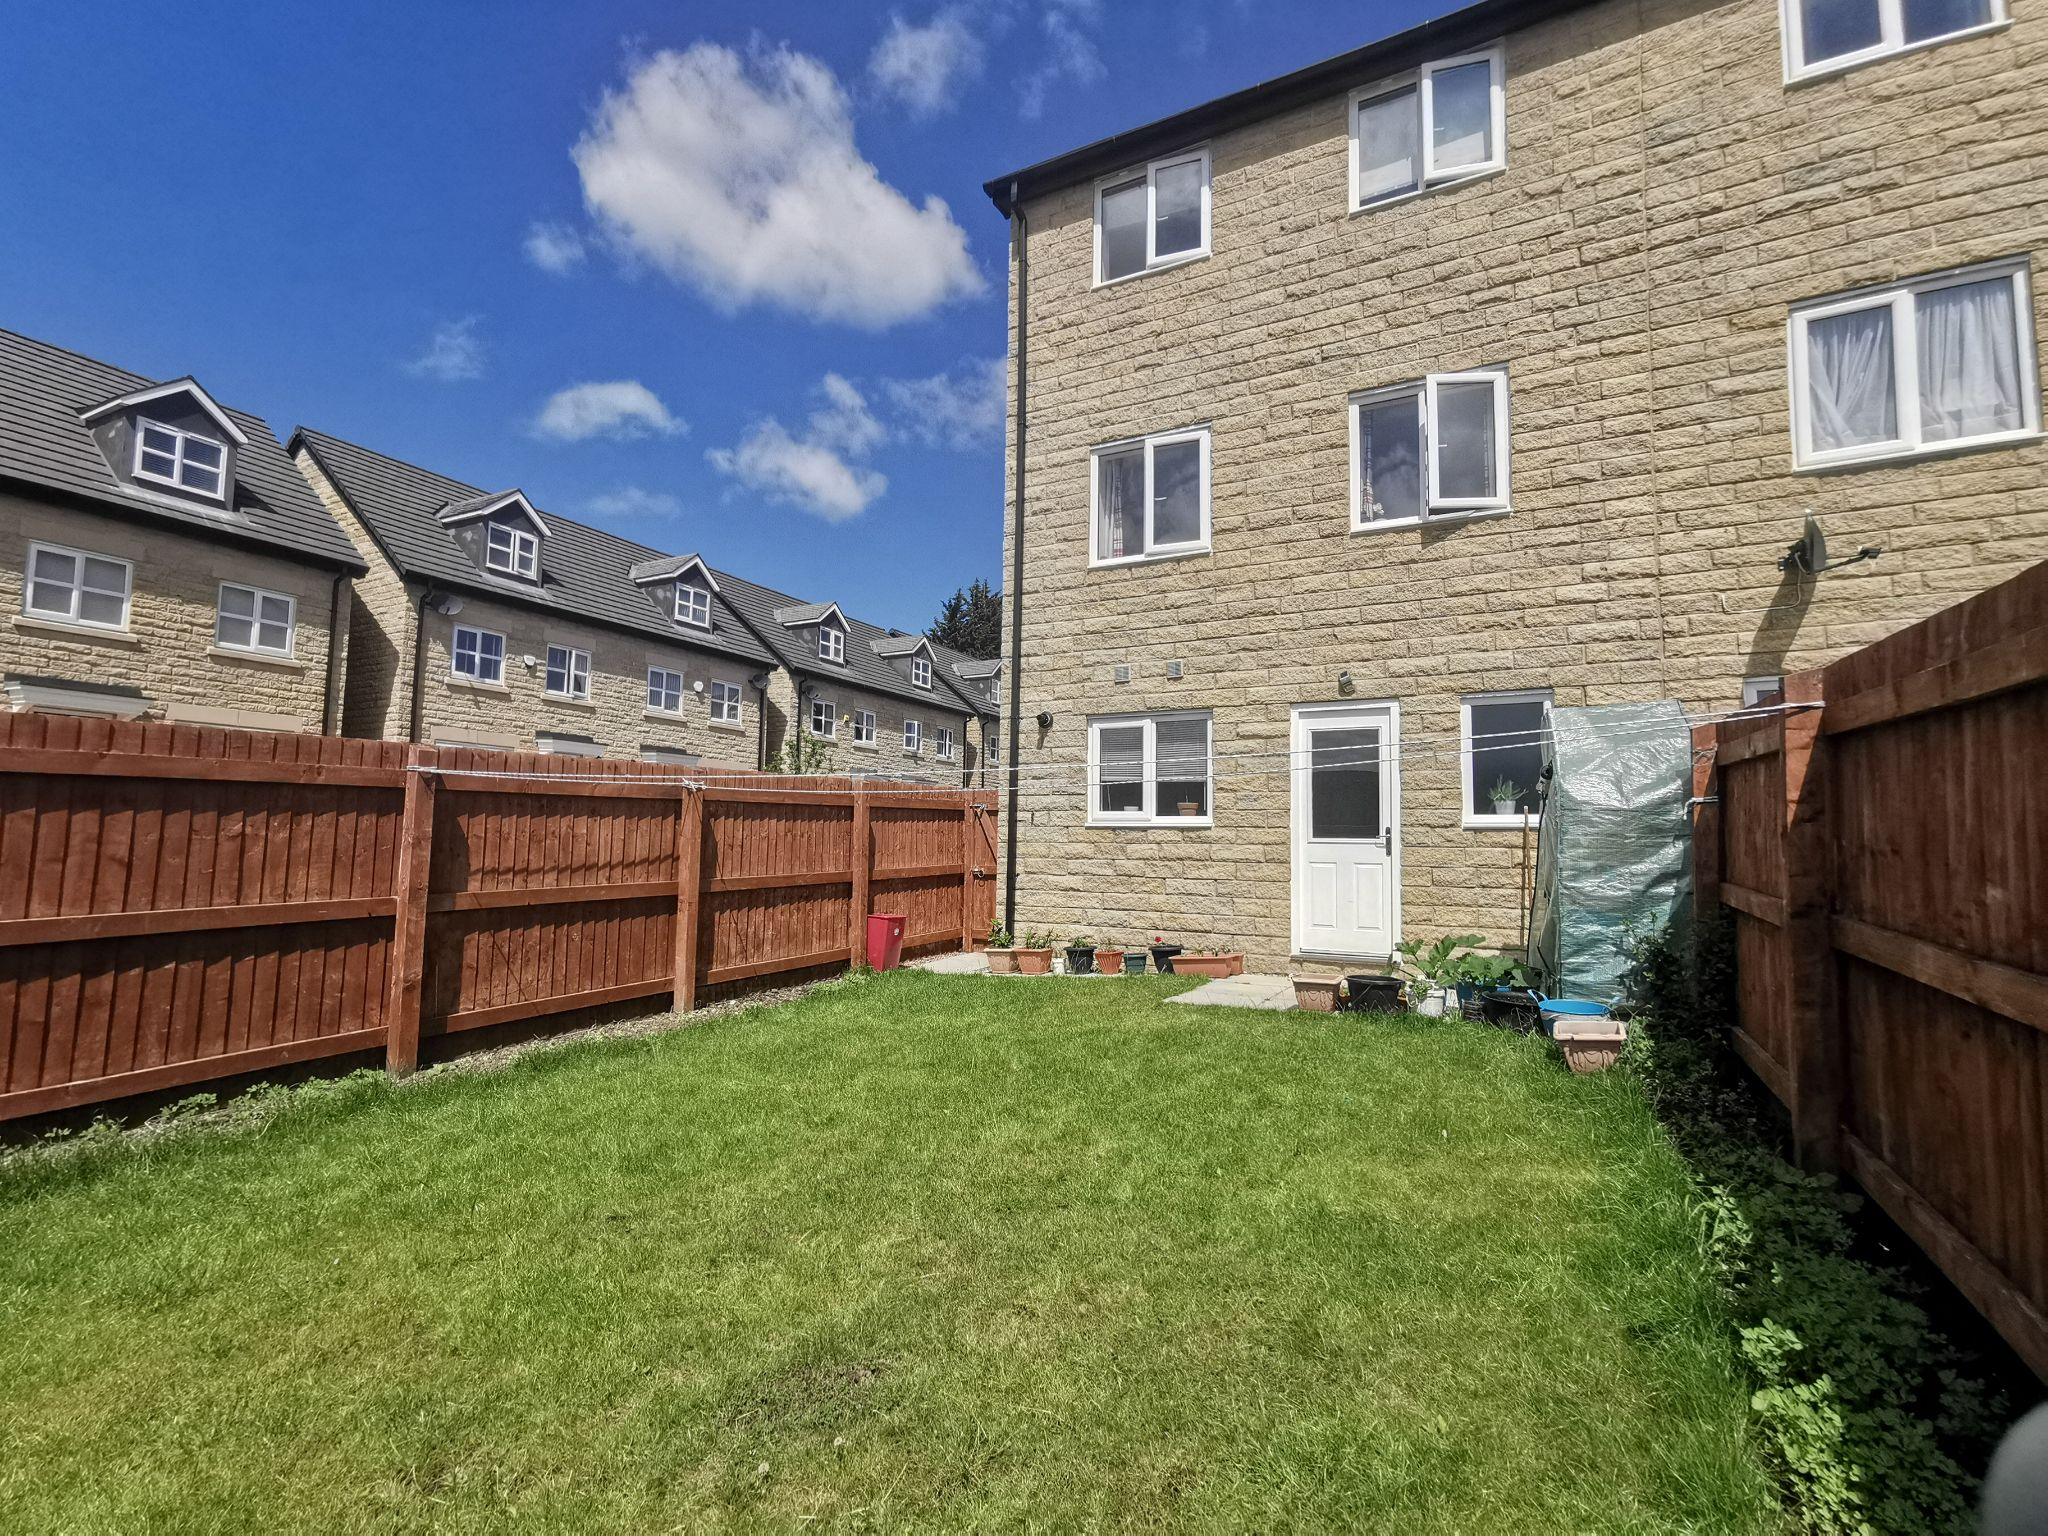 3 bedroom end terraced house For Sale in Bradford - Photograph 20.